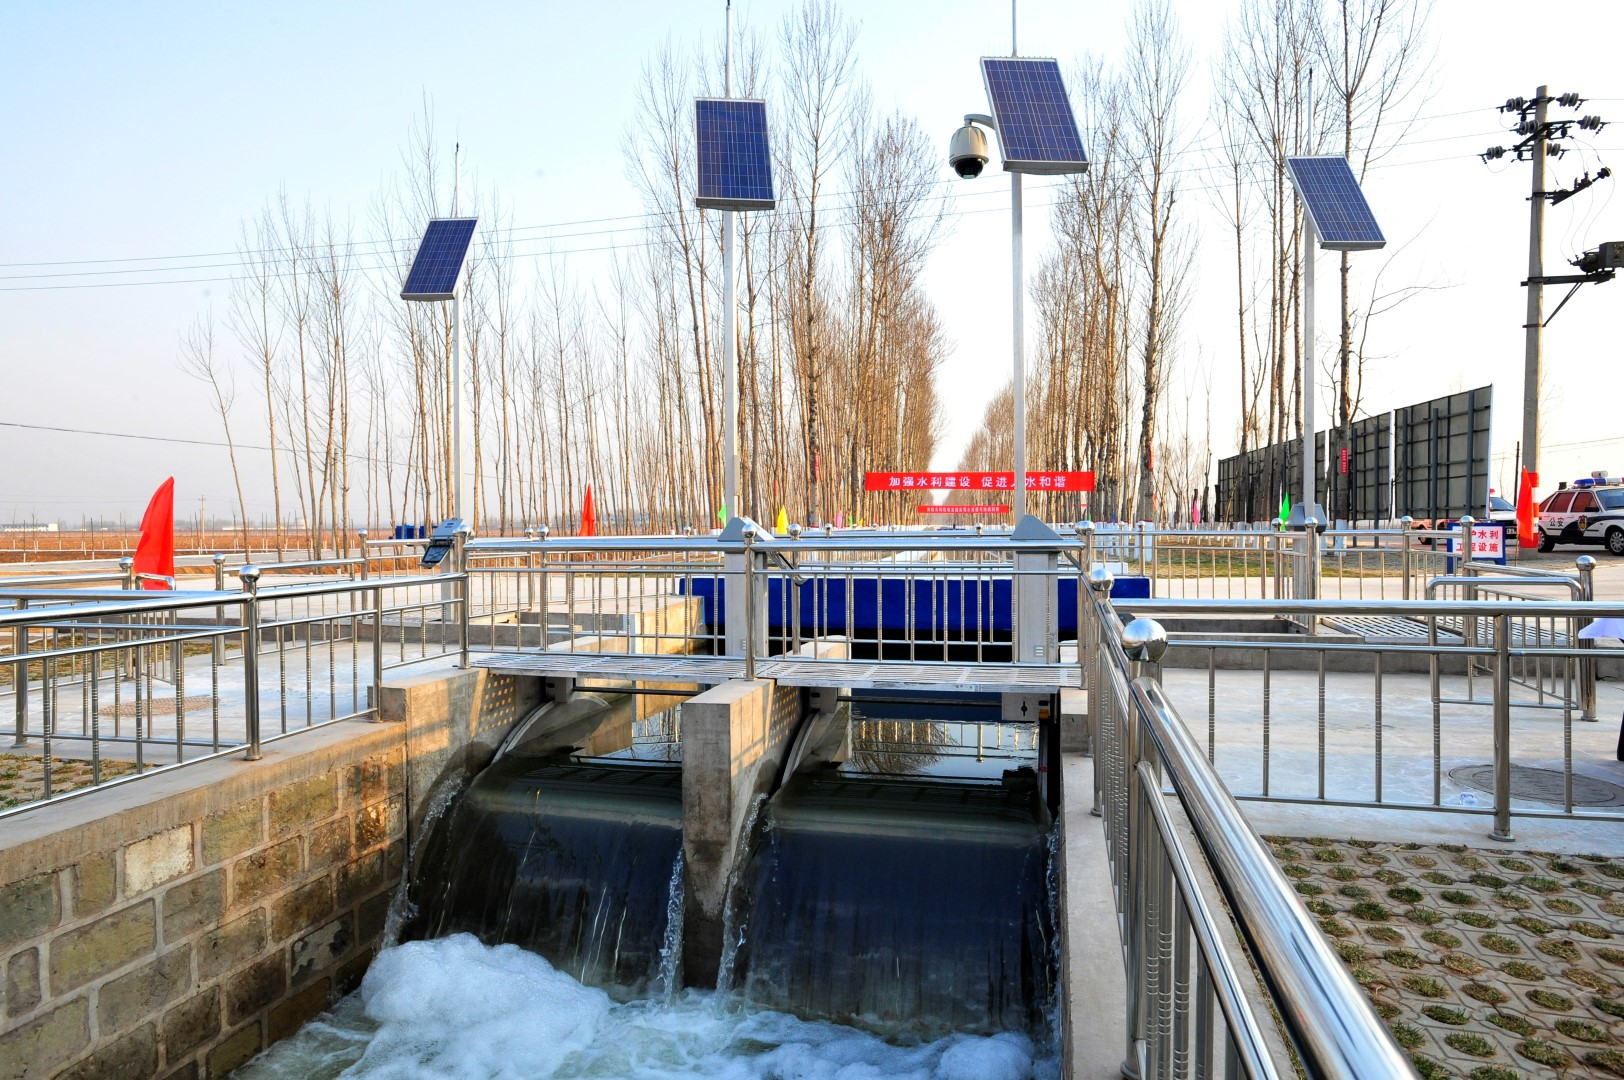 Overshots gates installed in Fen River, China